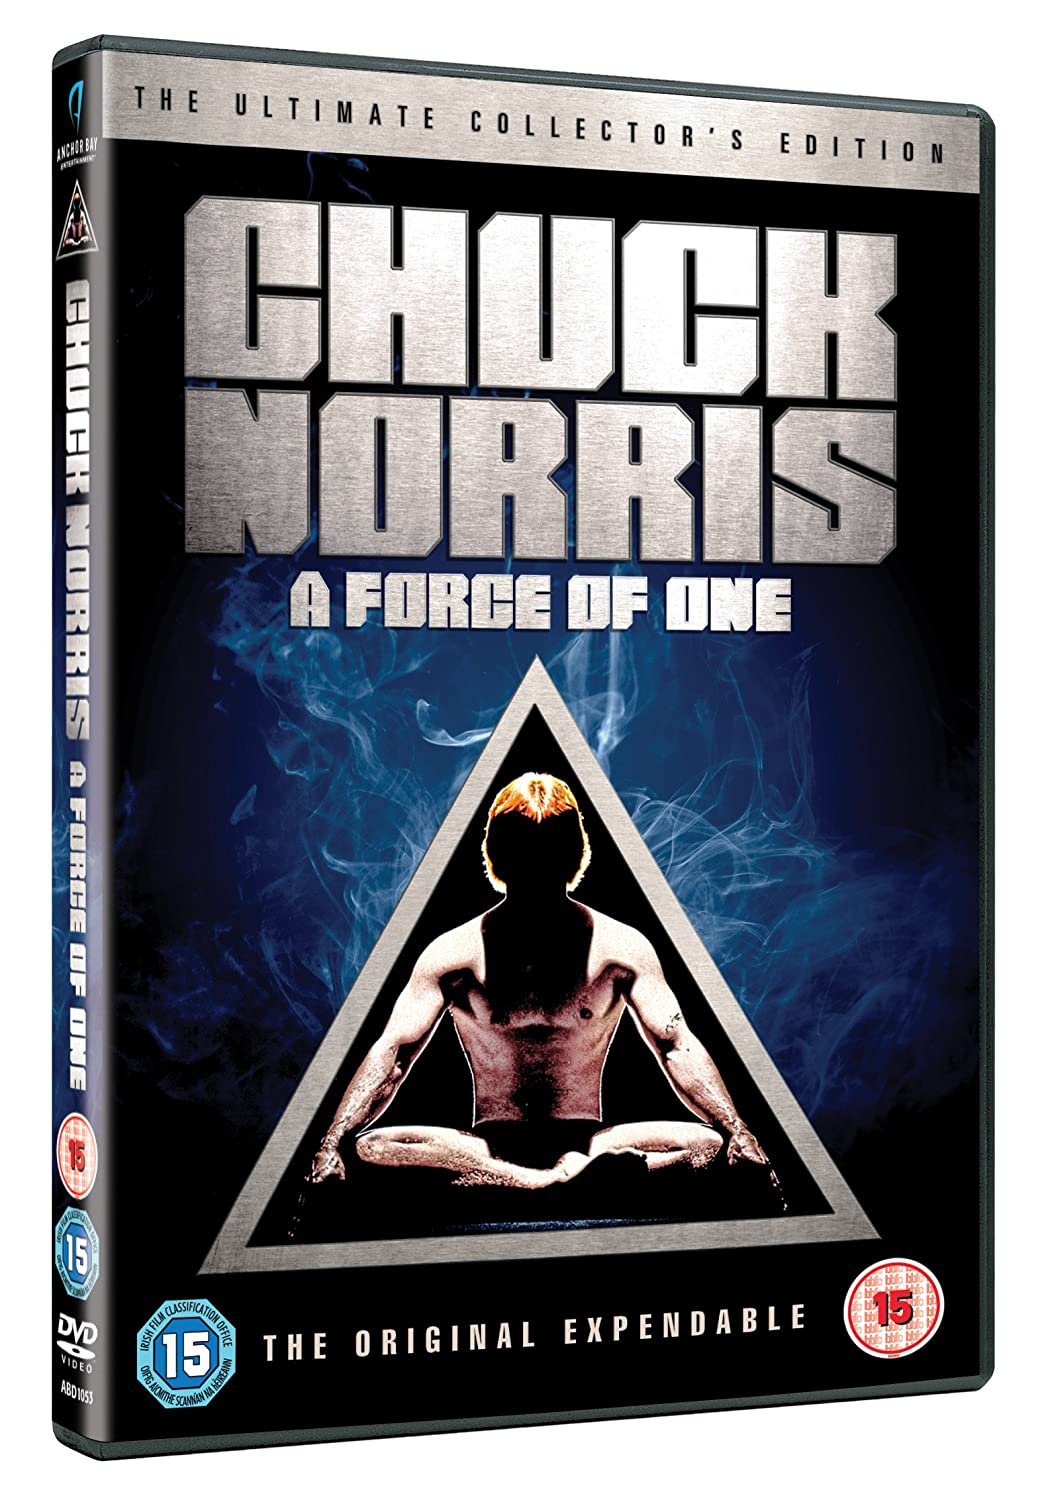 A Force of One [DVD] [1979] [Reino Unido]: Amazon.es: Chuck ...